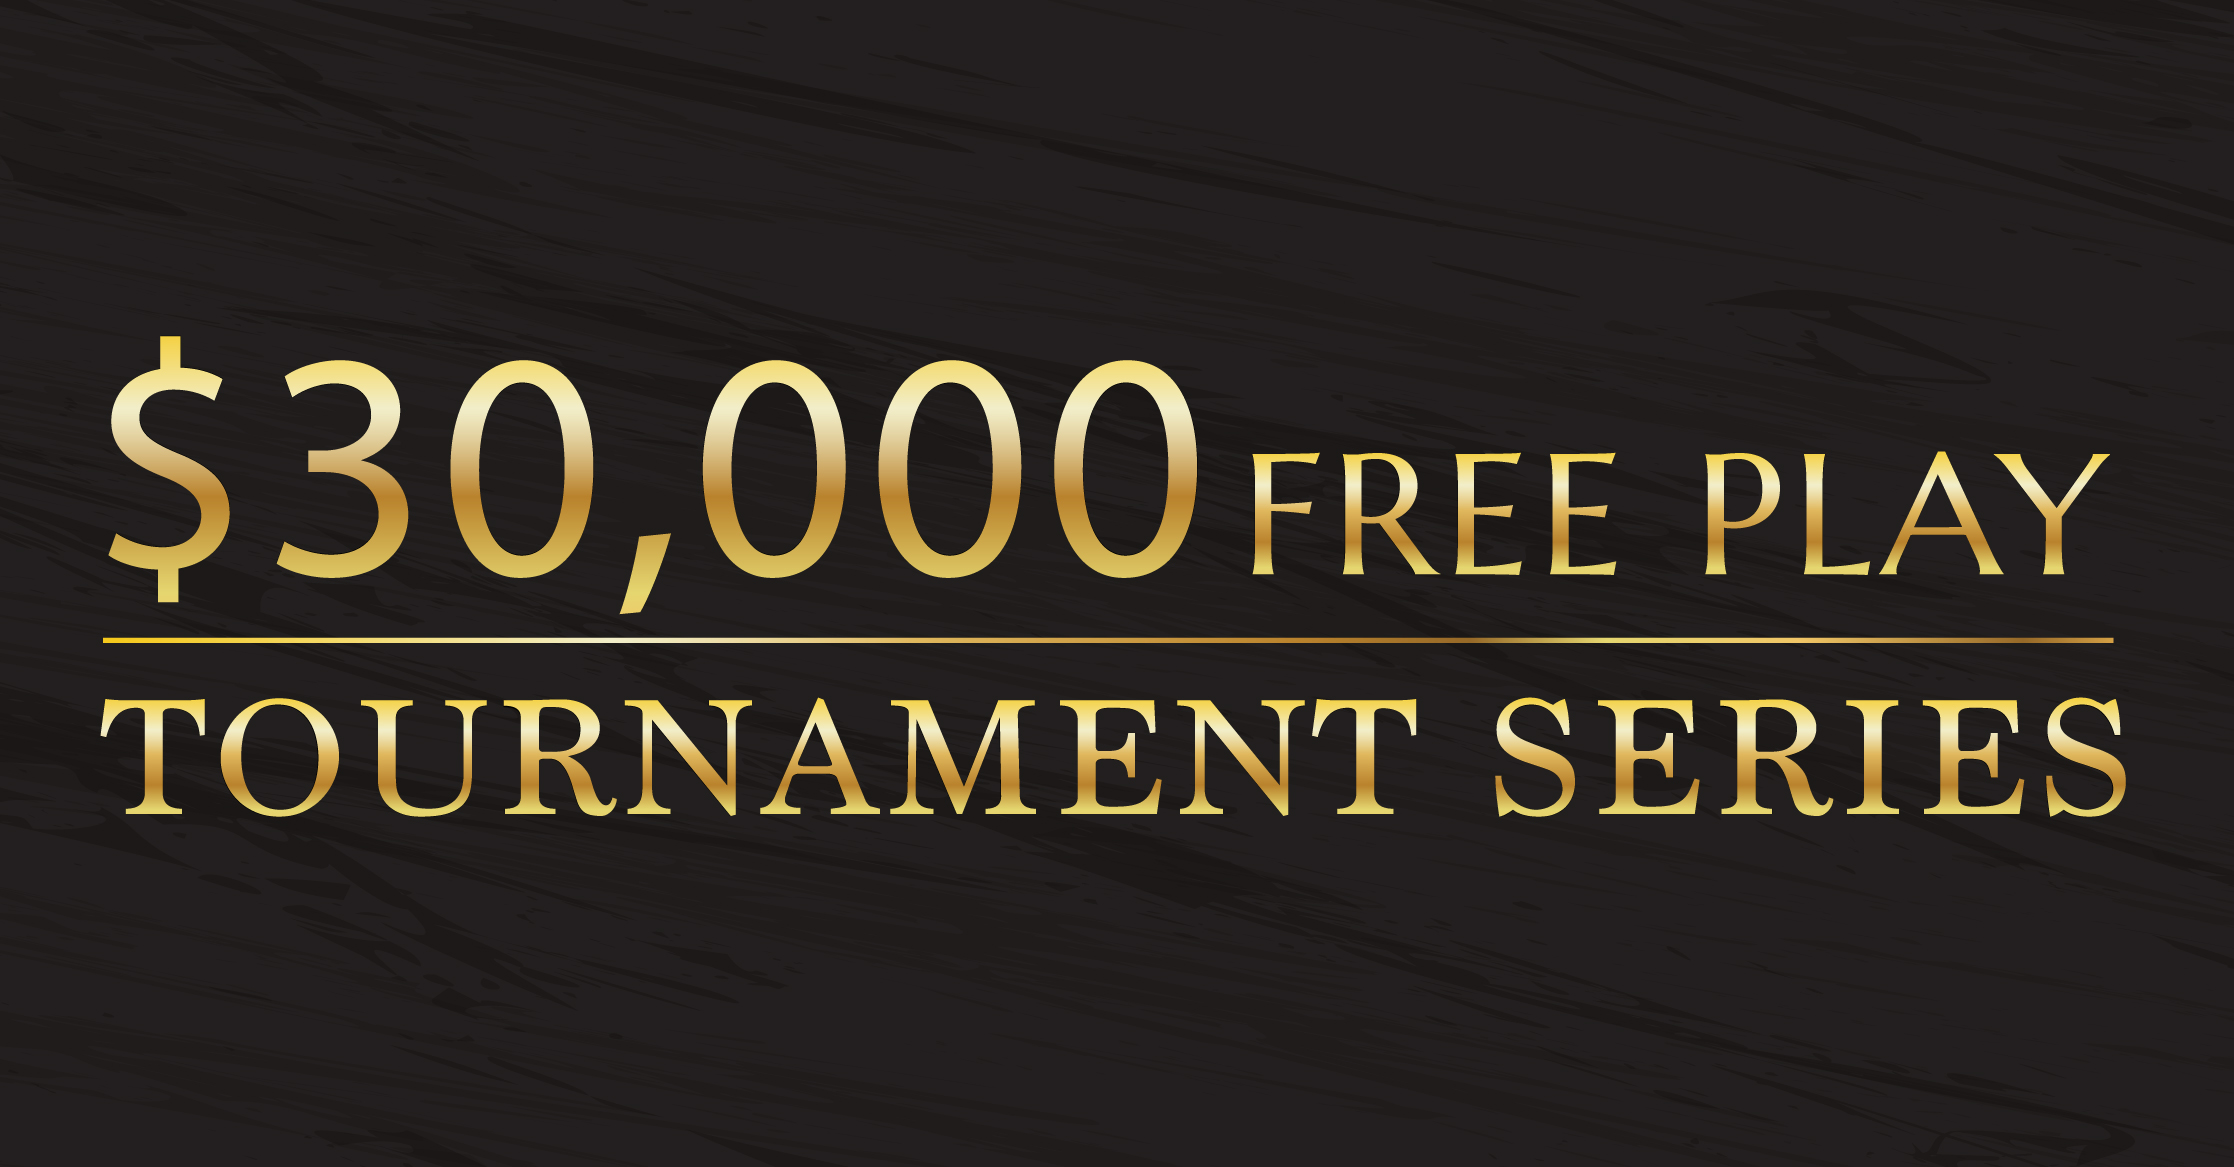 $30,000 TOURNAMENT SERIES